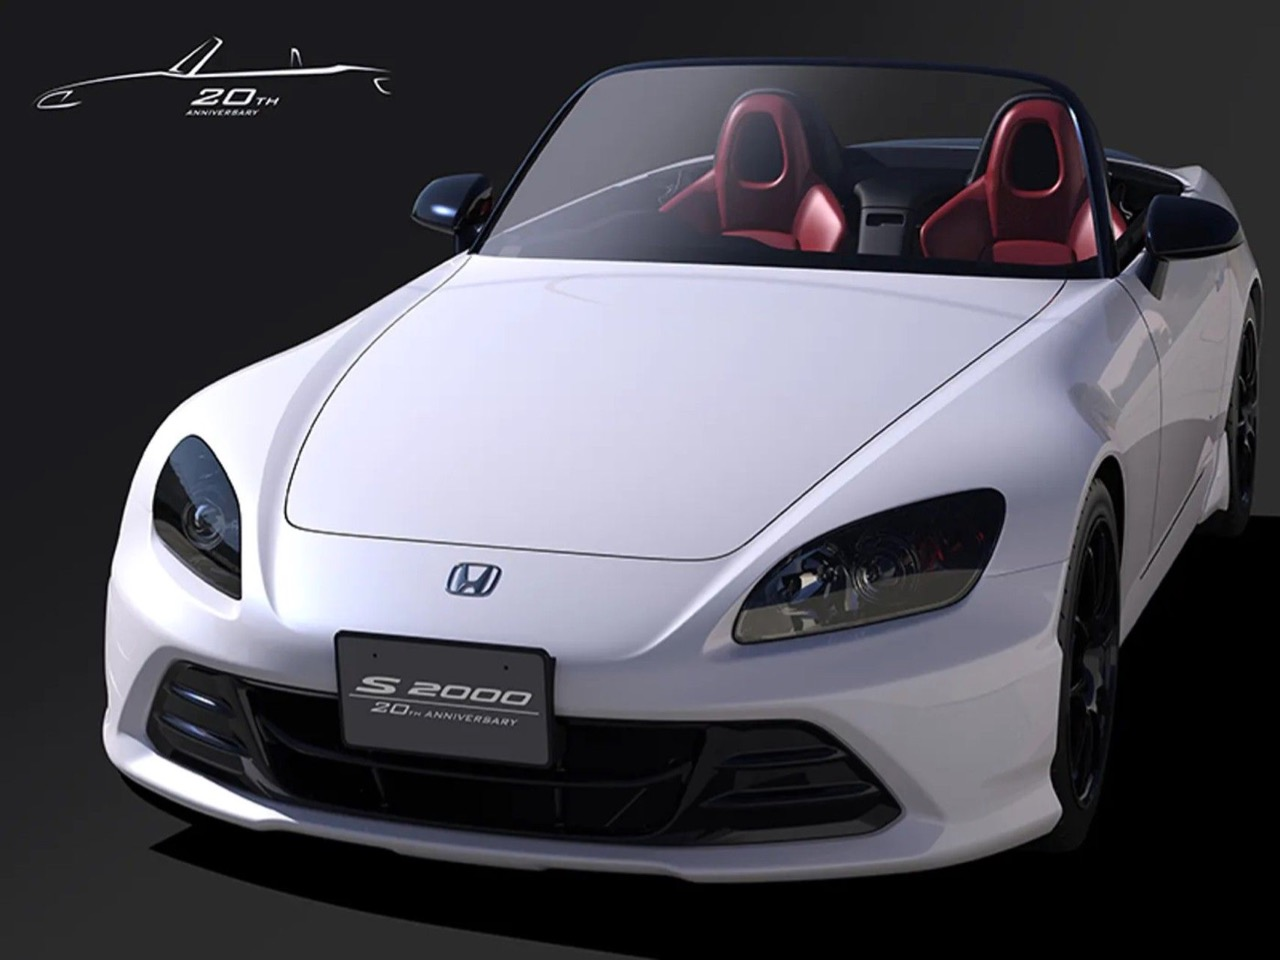 Honda S2000 20th Anniversary – 1